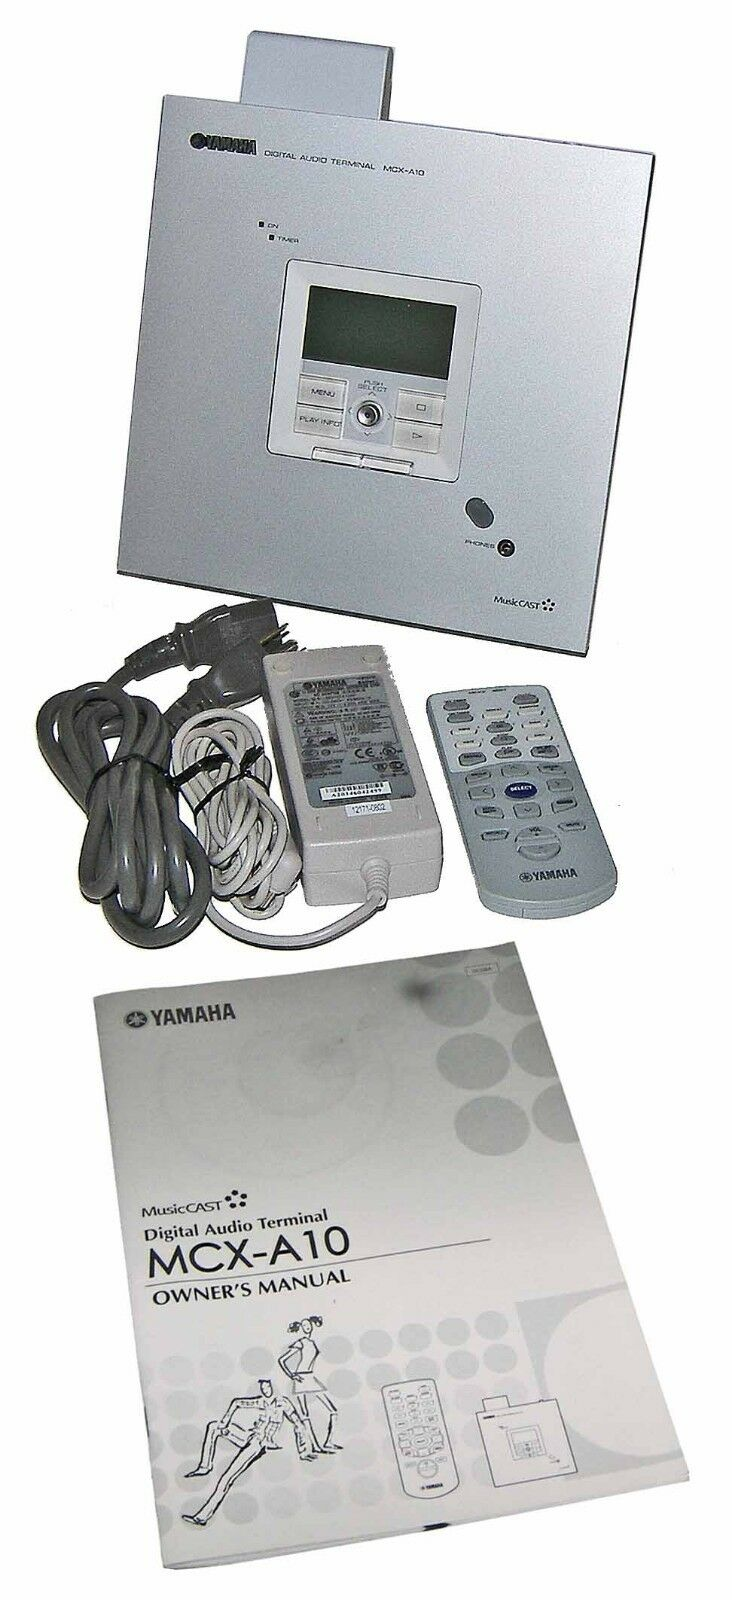 ✪ Yamaha MCX-A10 Digital Audio Terminal MusiCAST Wireless Client-REMOTE+ TESTED